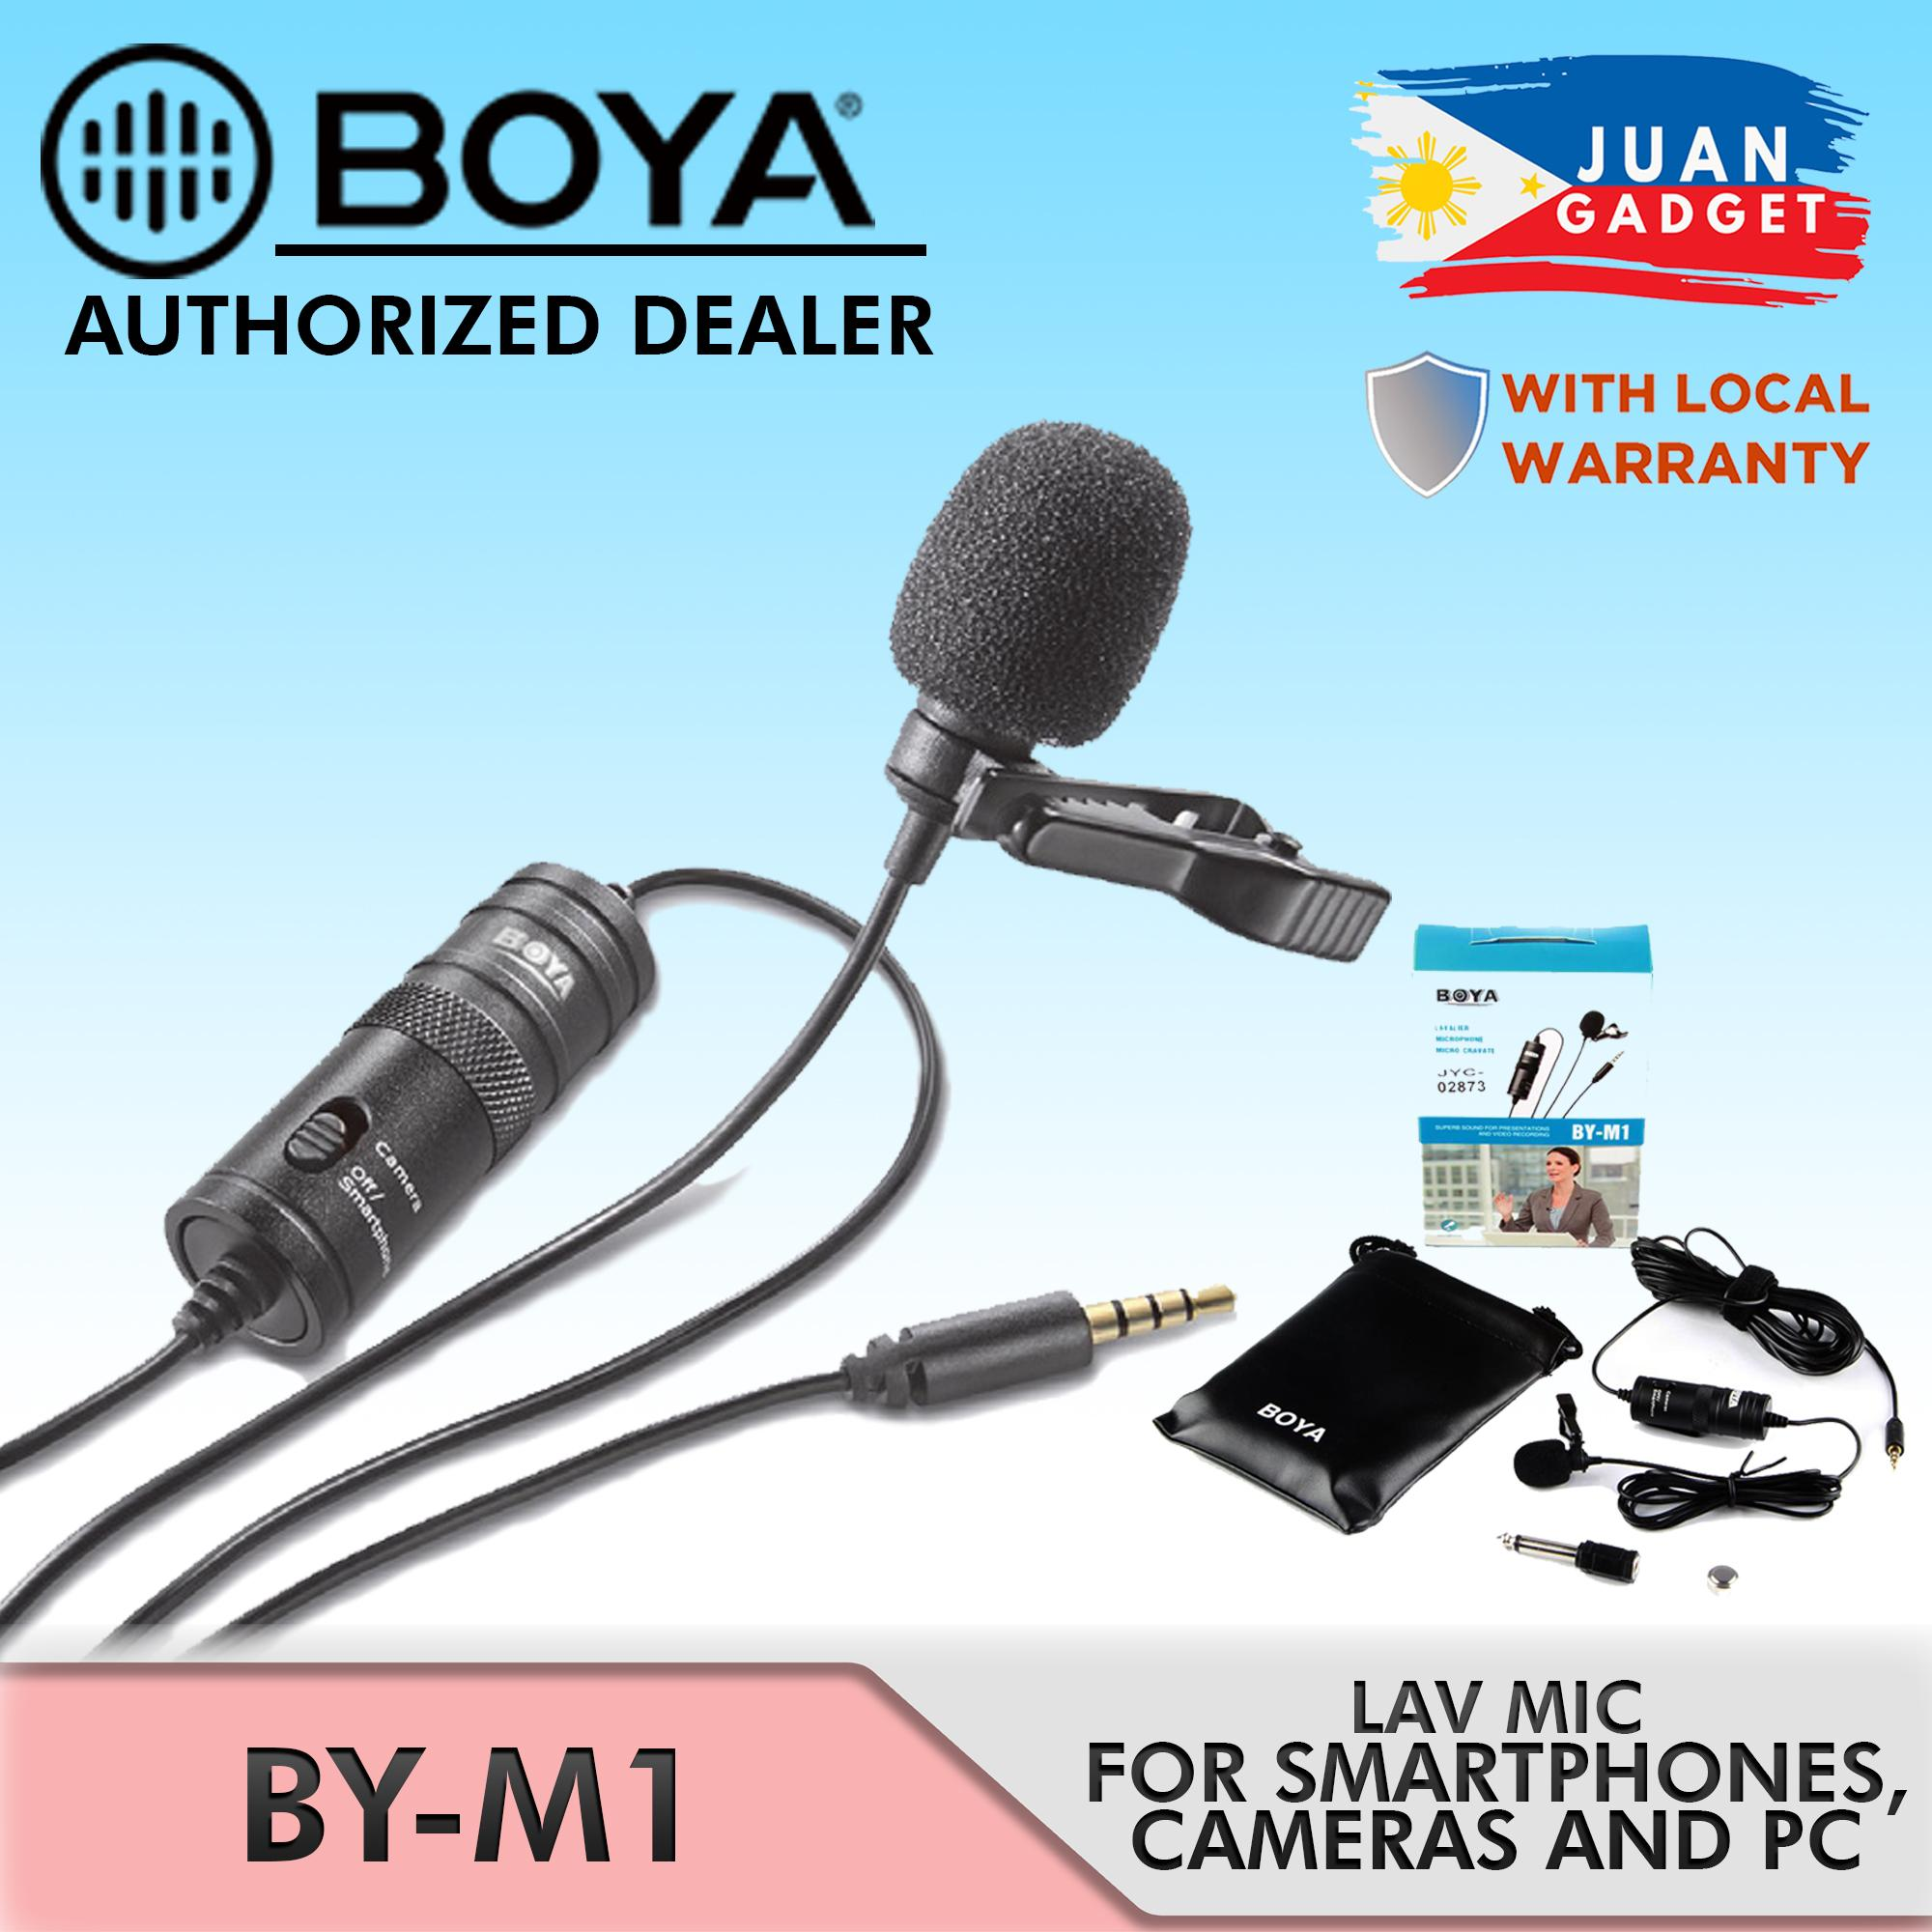 BOYA BY-M1 Omni-Directional Lavalier Lapel Microphone for Smartphones and DSLR Cameras